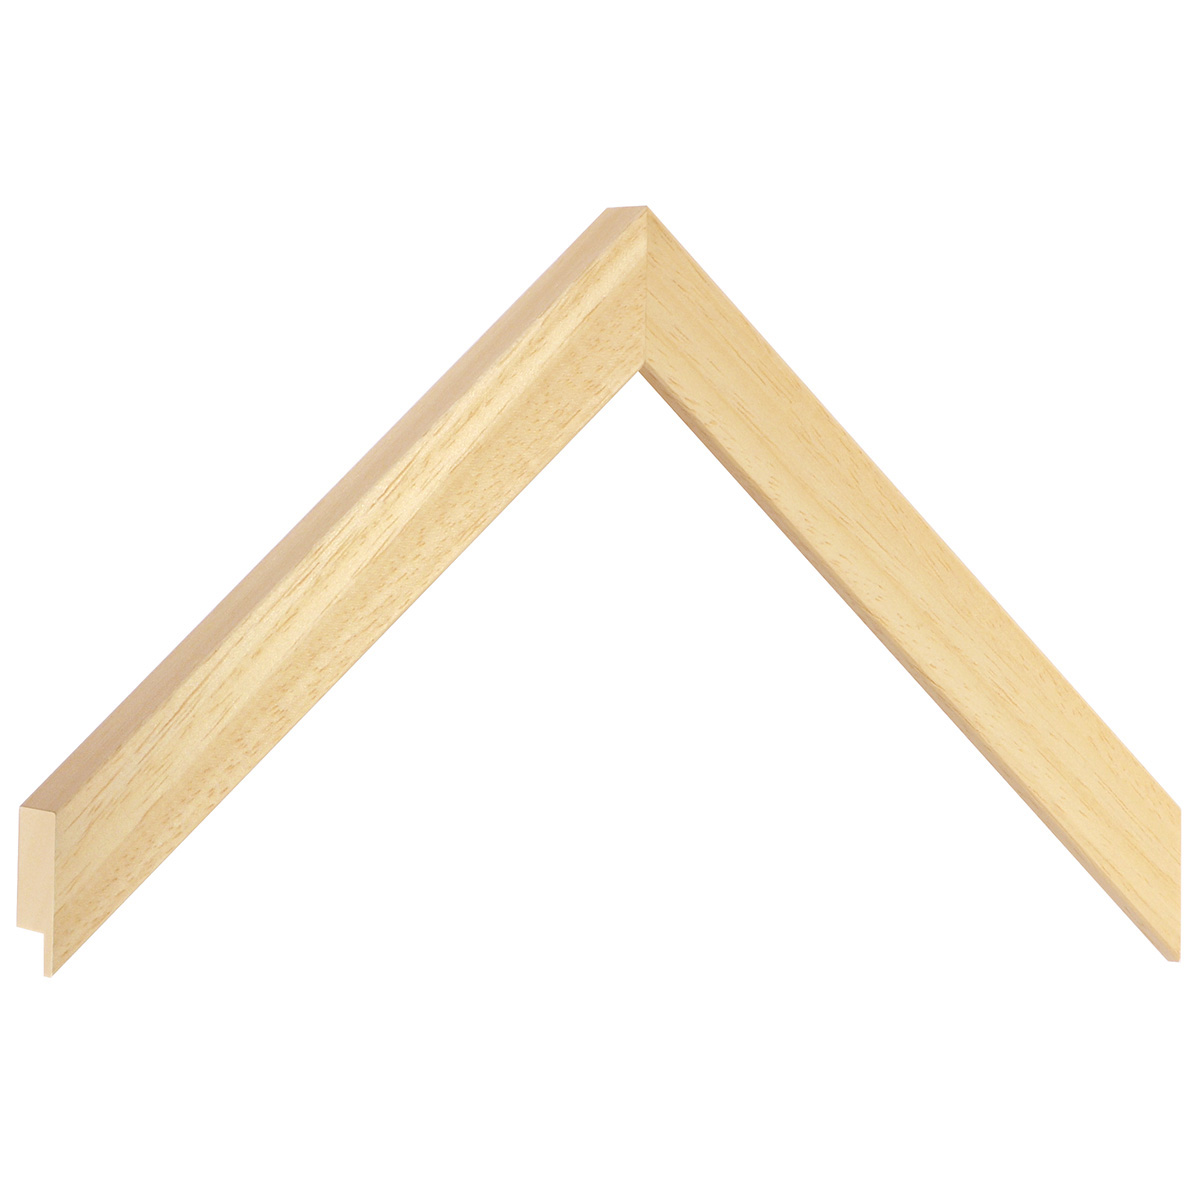 Moulding ayous, width 20mm height 20 - Bare wood